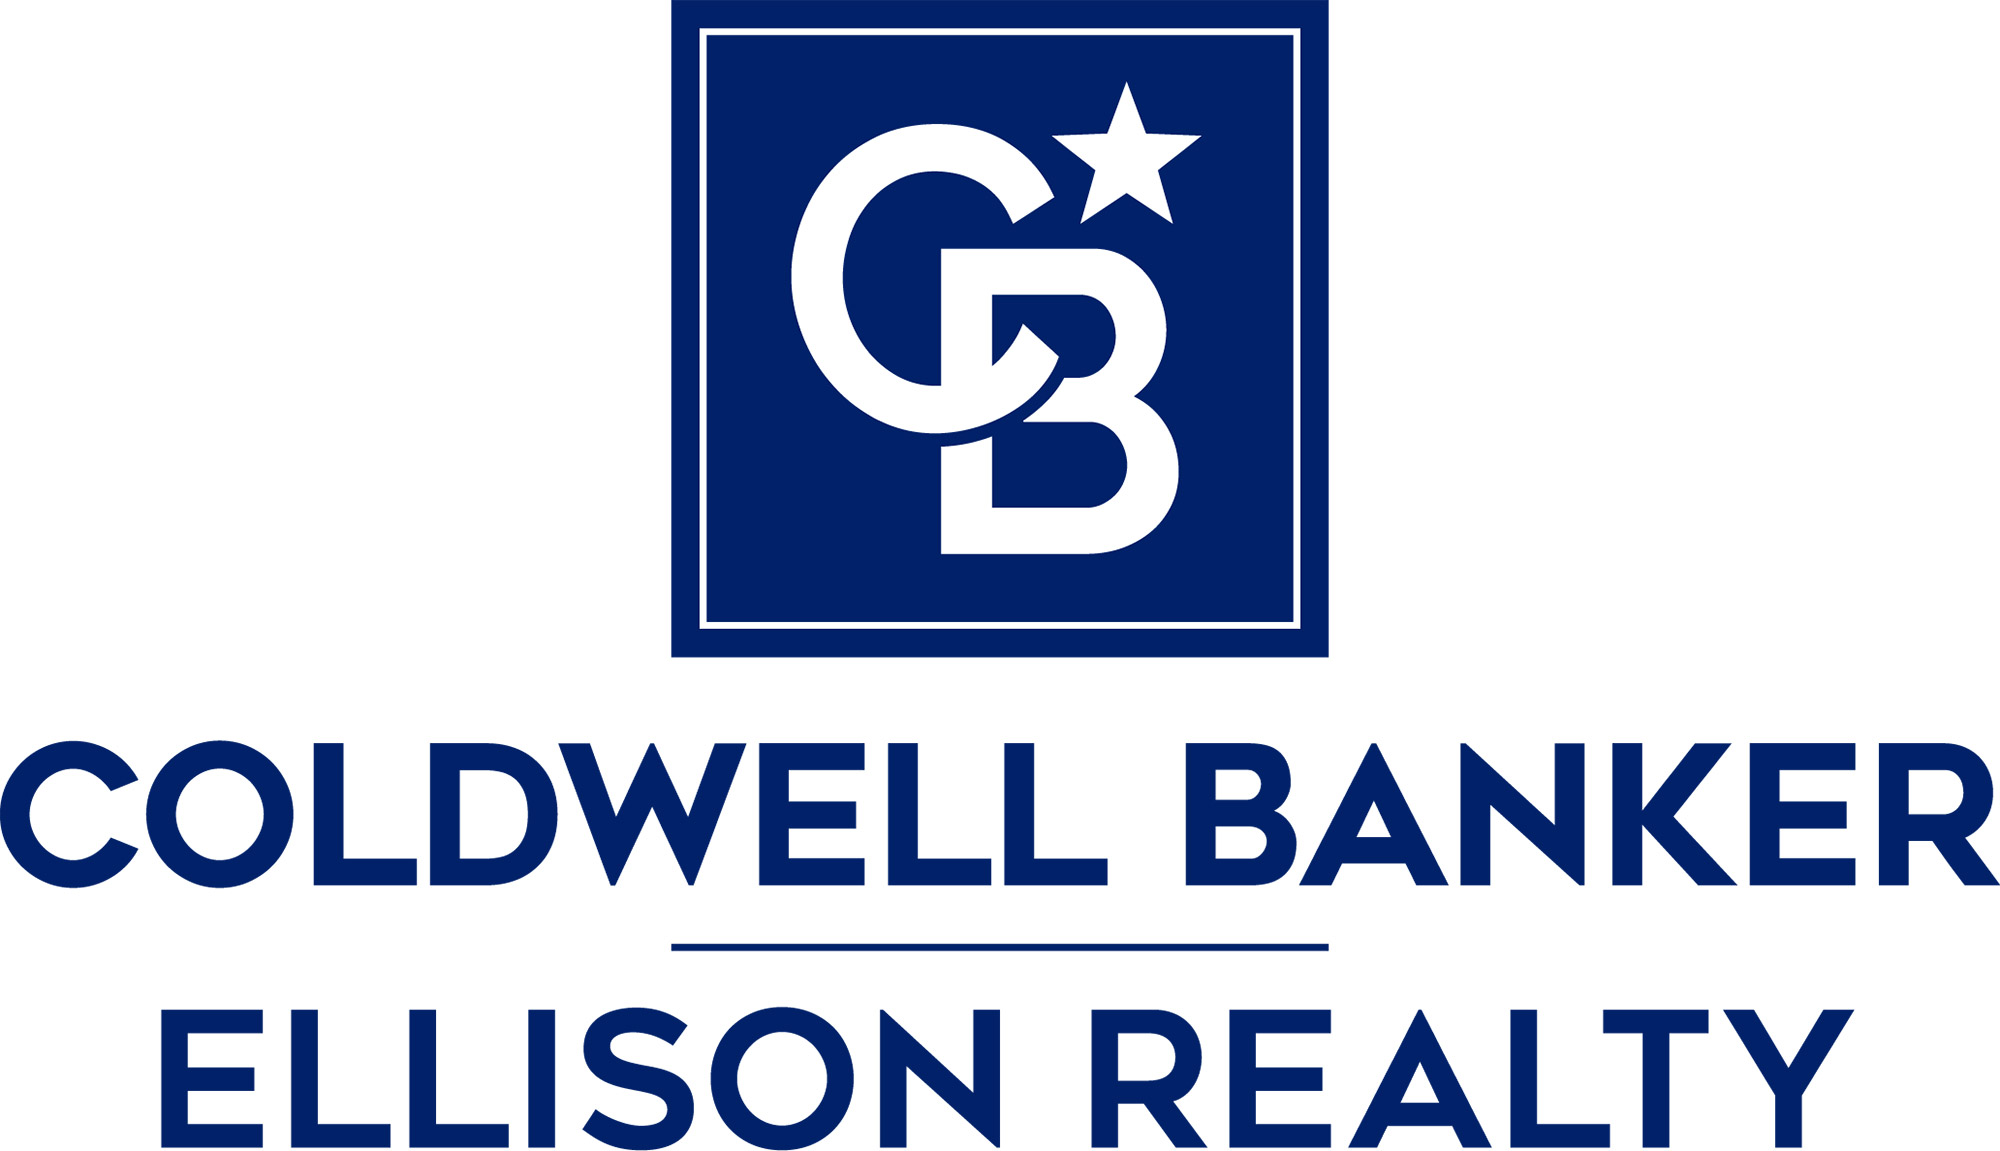 Kathy Johnson - Coldwell Banker Ellison Realty